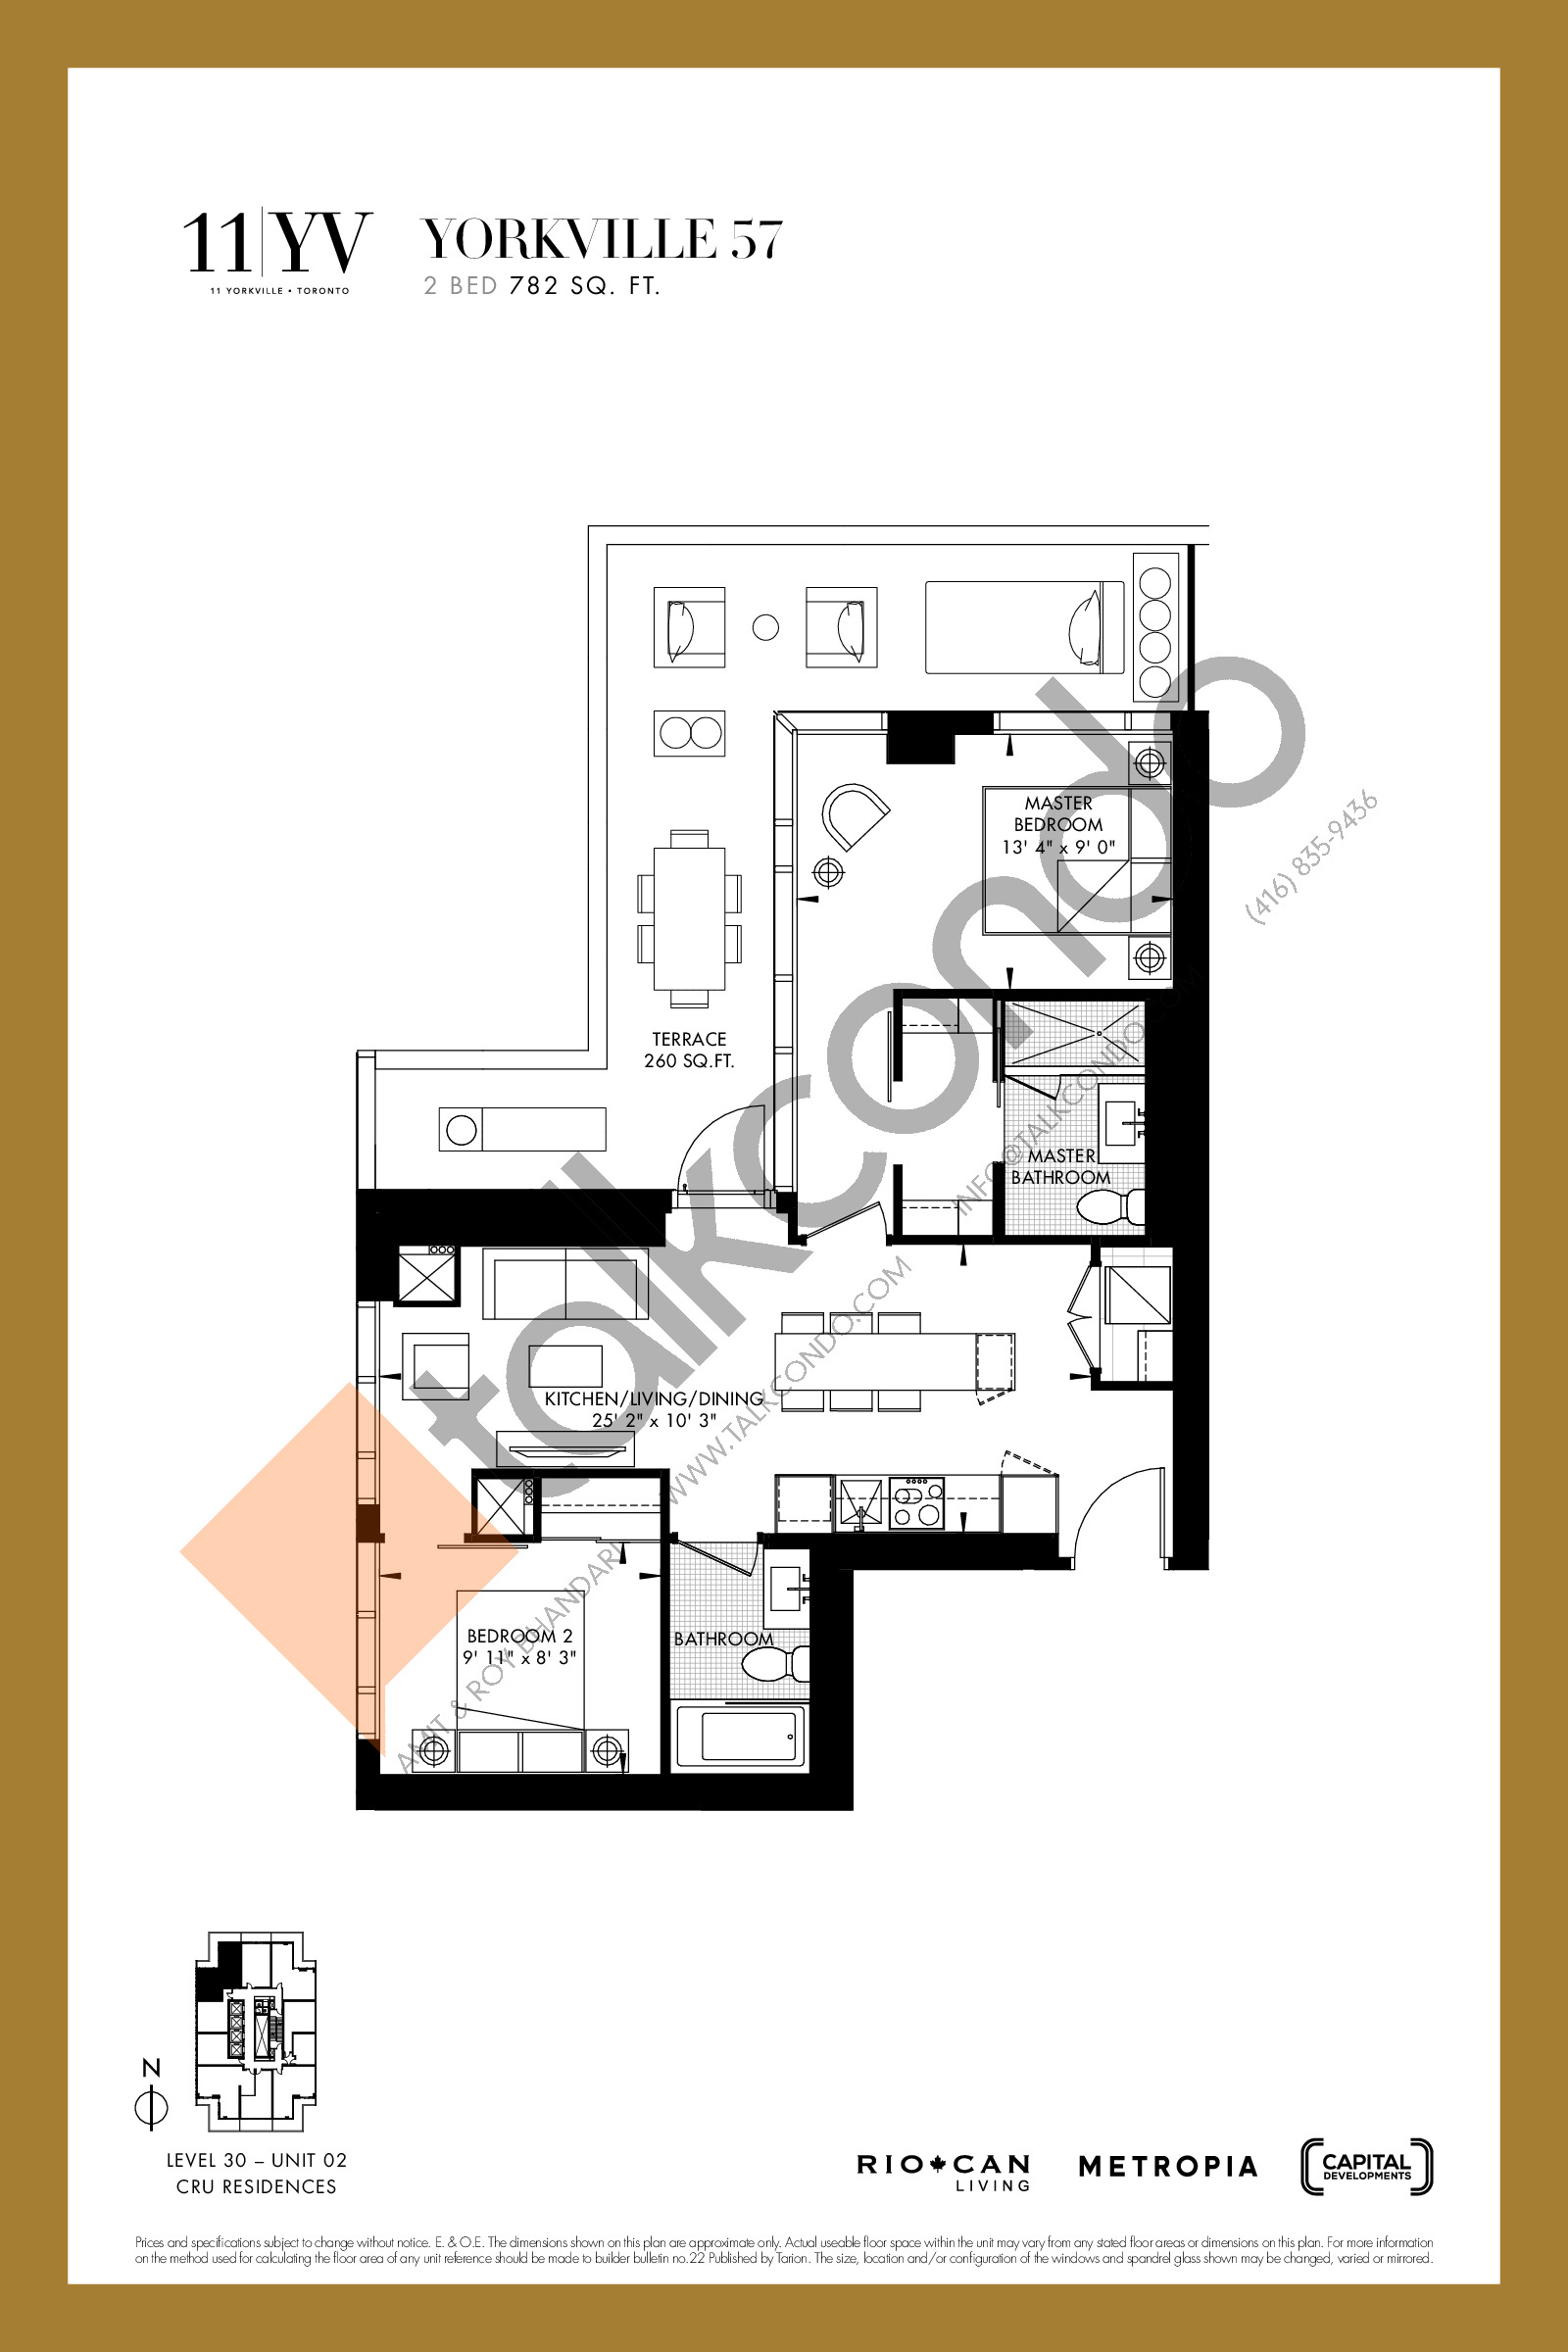 Yorkville 57 Floor Plan at 11YV Condos - 782 sq.ft